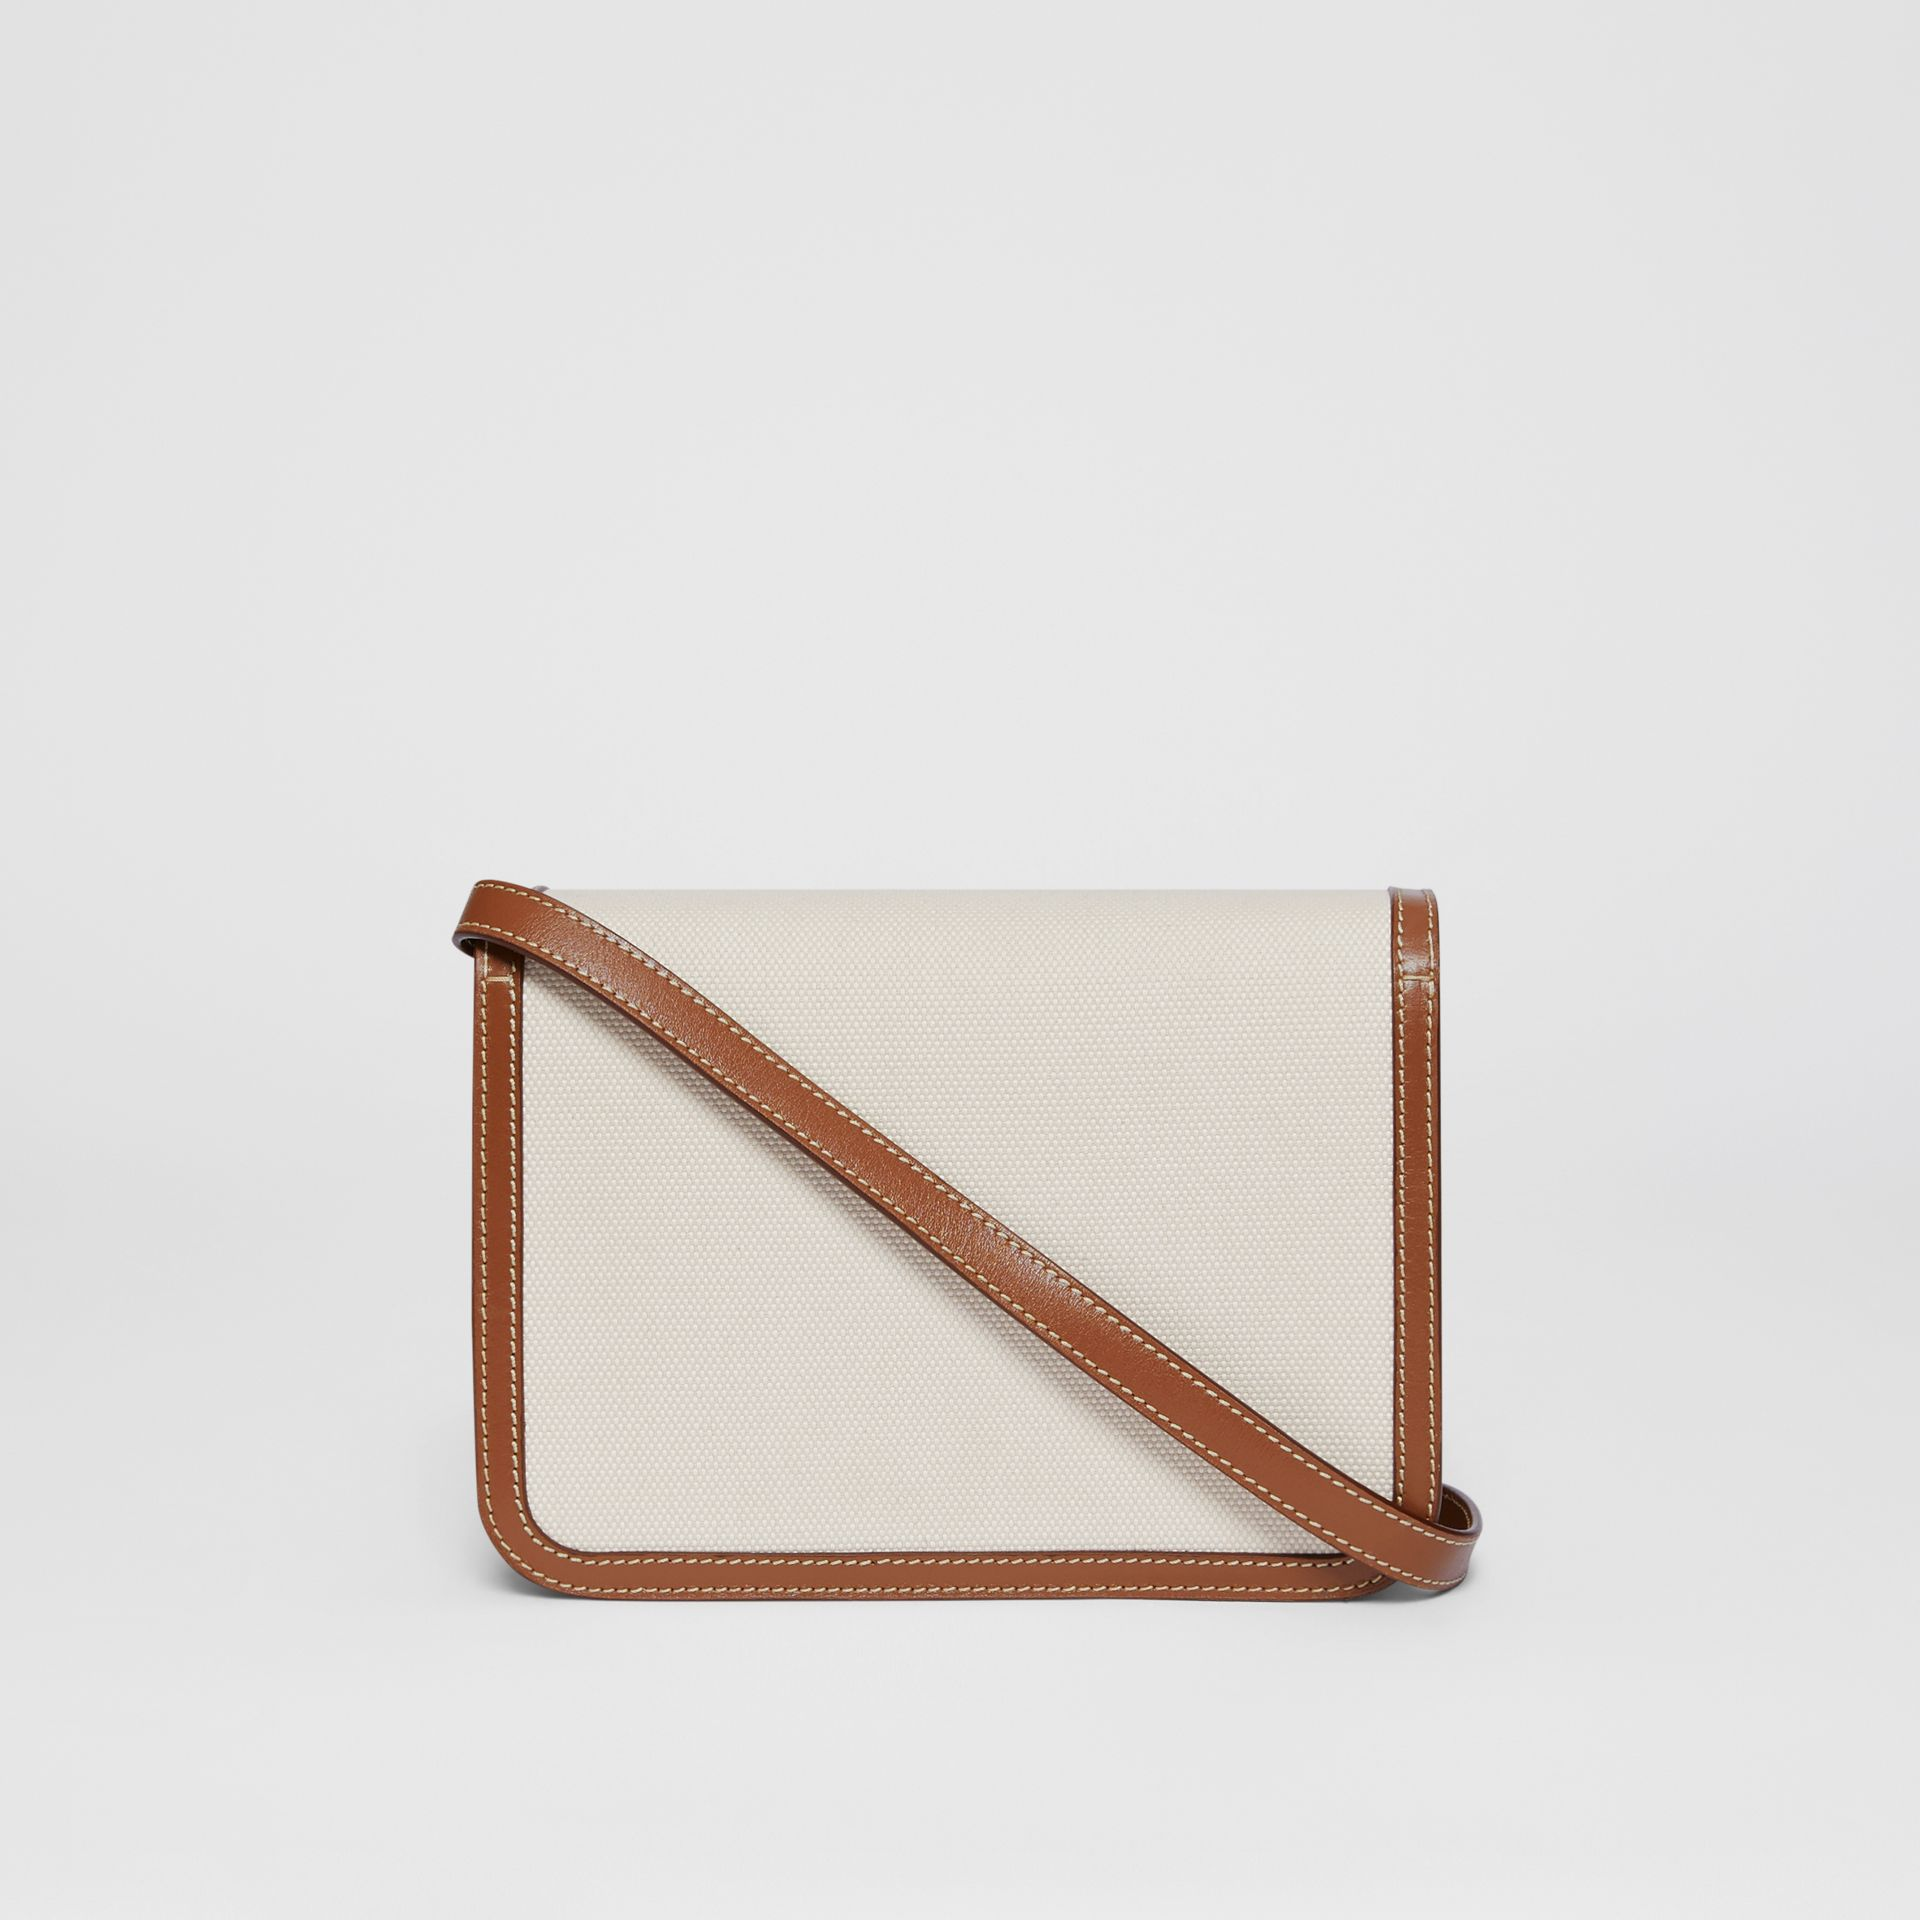 Small Two-tone Canvas and Leather TB Bag in Natural/malt Brown | Burberry - gallery image 6